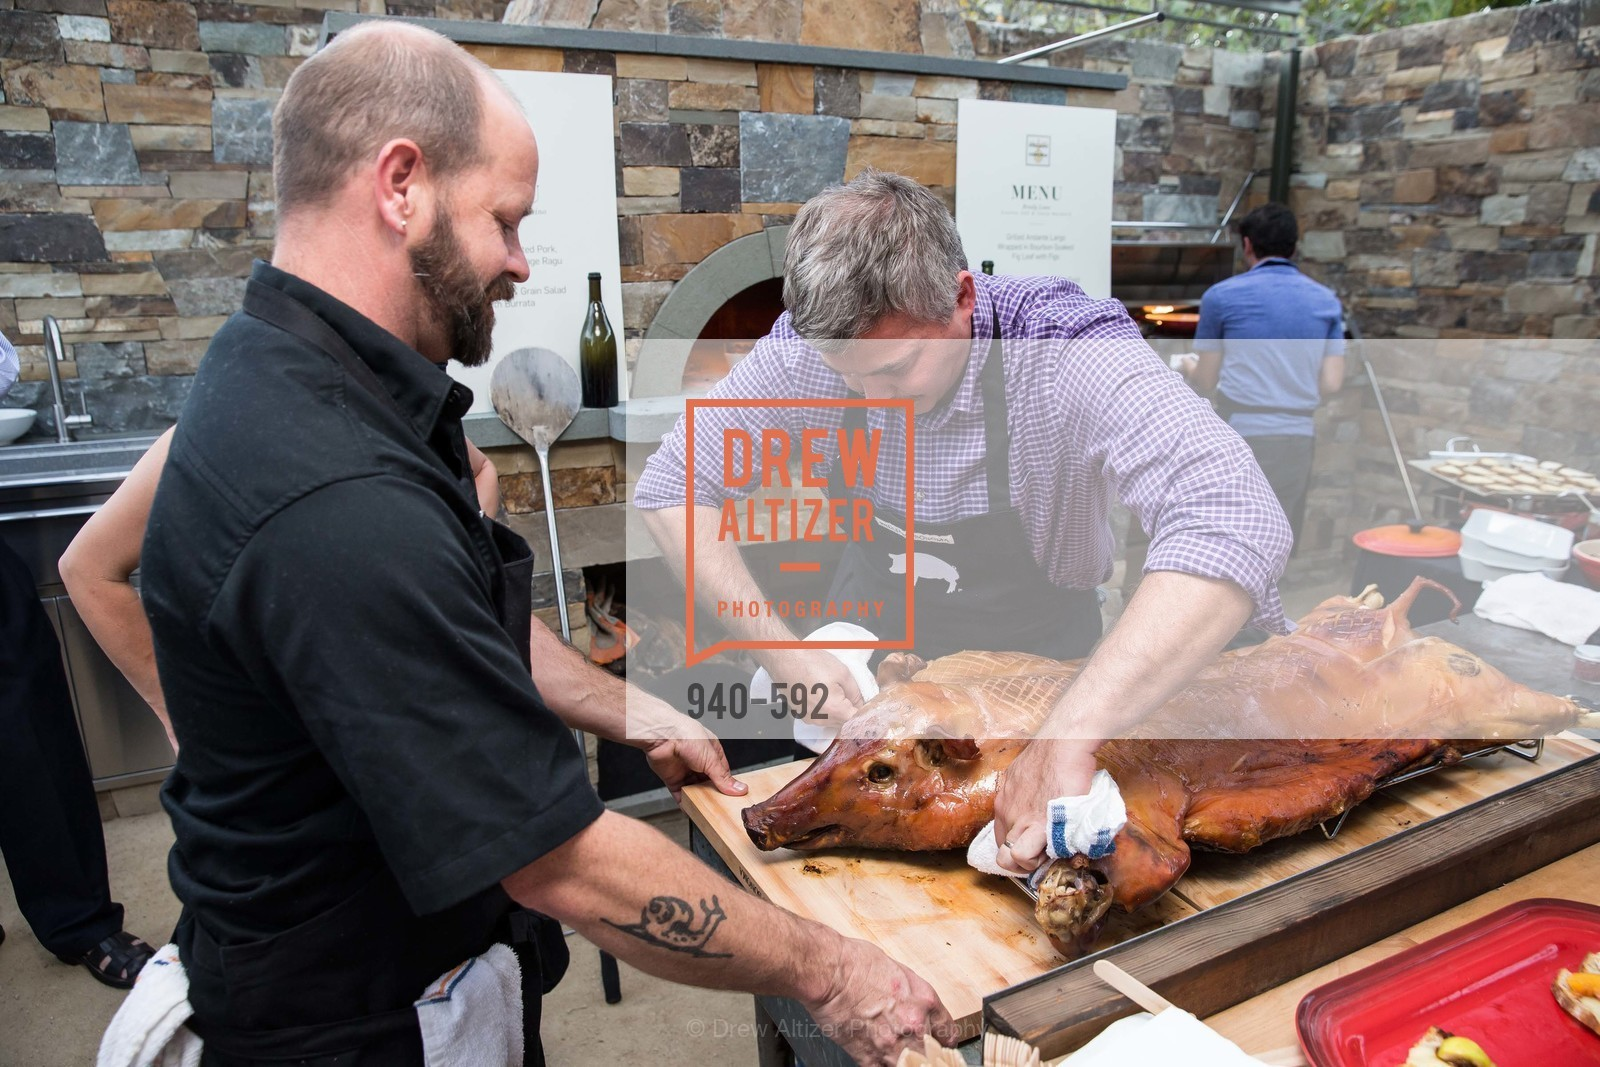 Extras, WILLIAMS-SONOMA Cochon BBQ Celebration, October 3rd, 2014, Photo,Drew Altizer, Drew Altizer Photography, full-service agency, private events, San Francisco photographer, photographer california